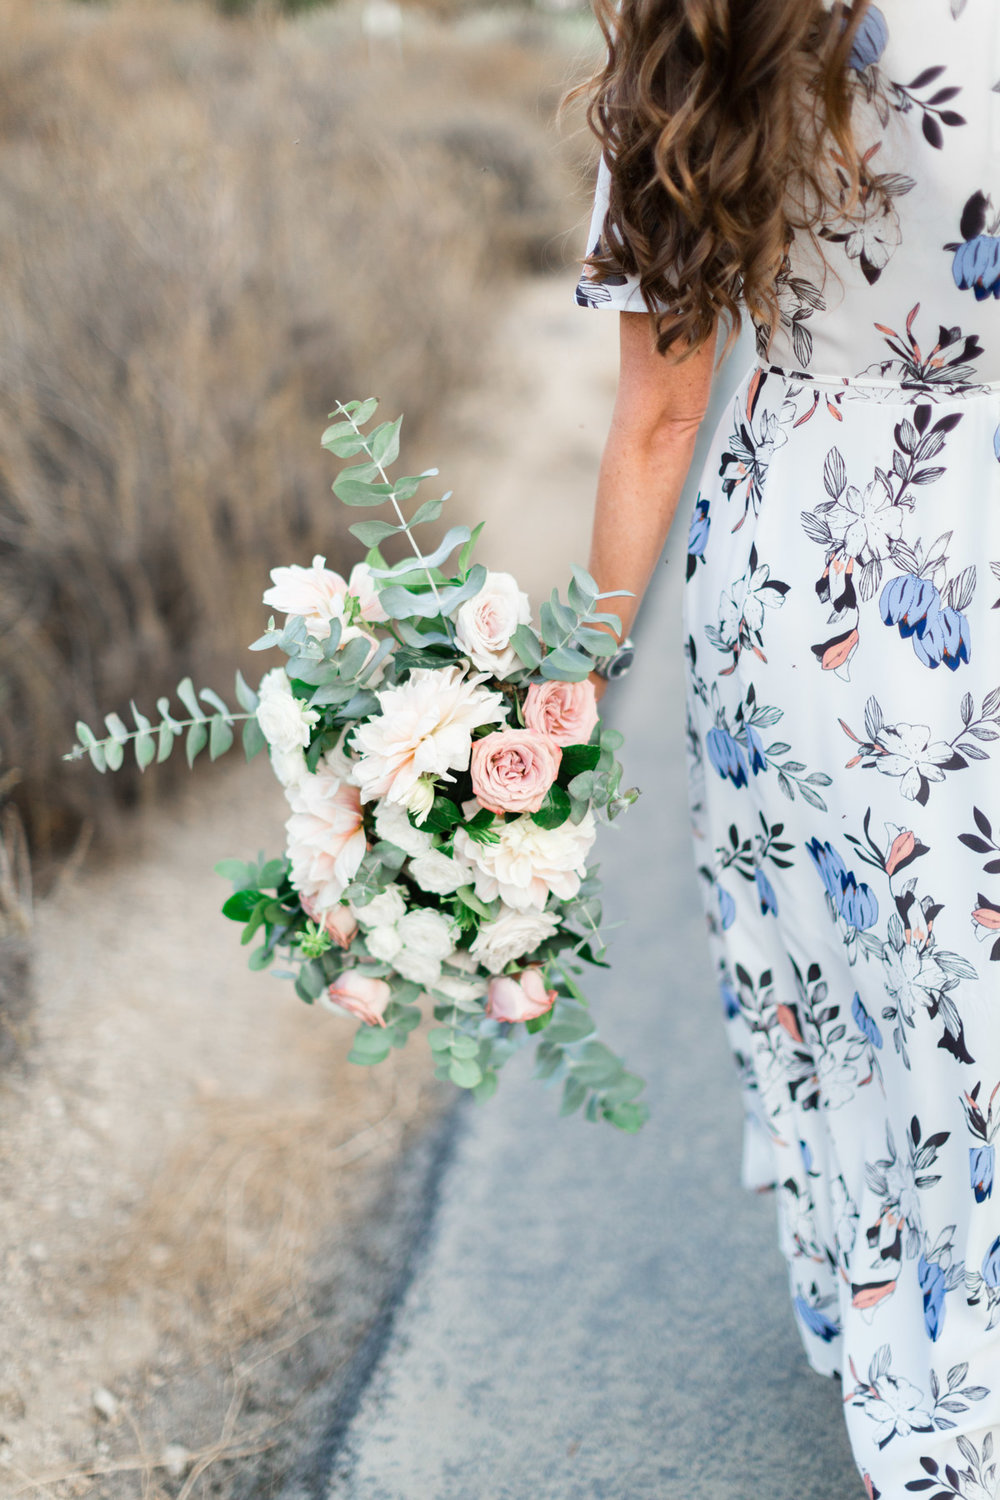 Fun bridal bouquet of blush dahlias, white roses and eucalyptus for beach engagement photo session | Newport Beach, CA | Compass Floral | Wedding Florist in San Diego and Southern California | Cavin Elizabeth Photography